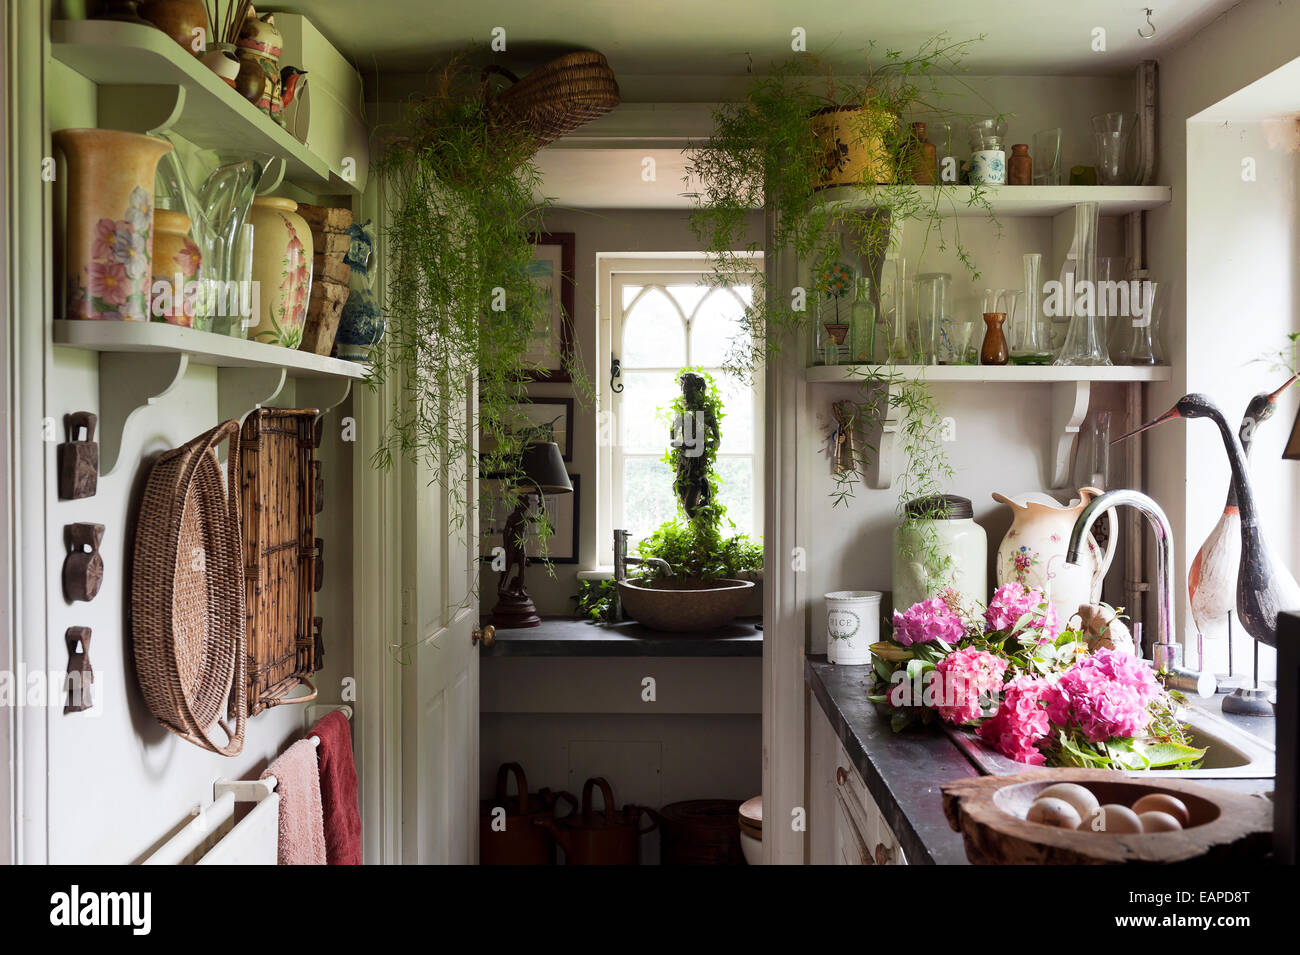 Galley Country Kitchen colourful vases on shelves in country kitchen galley stock photo